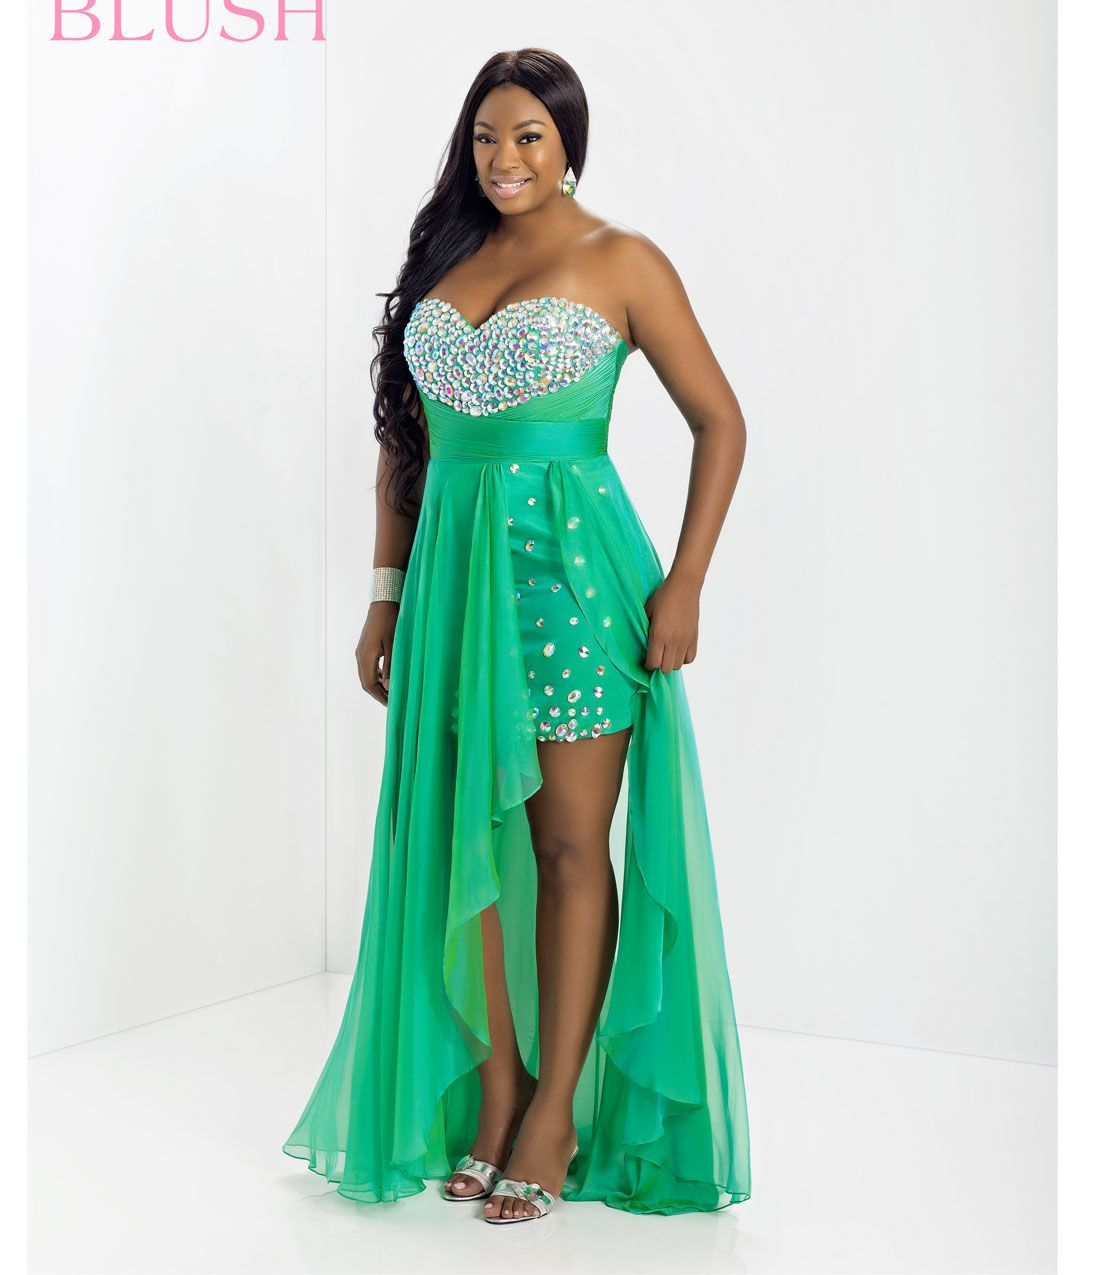 TOO by Blush Plus Size 2014 Prom Dresses - Spring Green Beaded ...